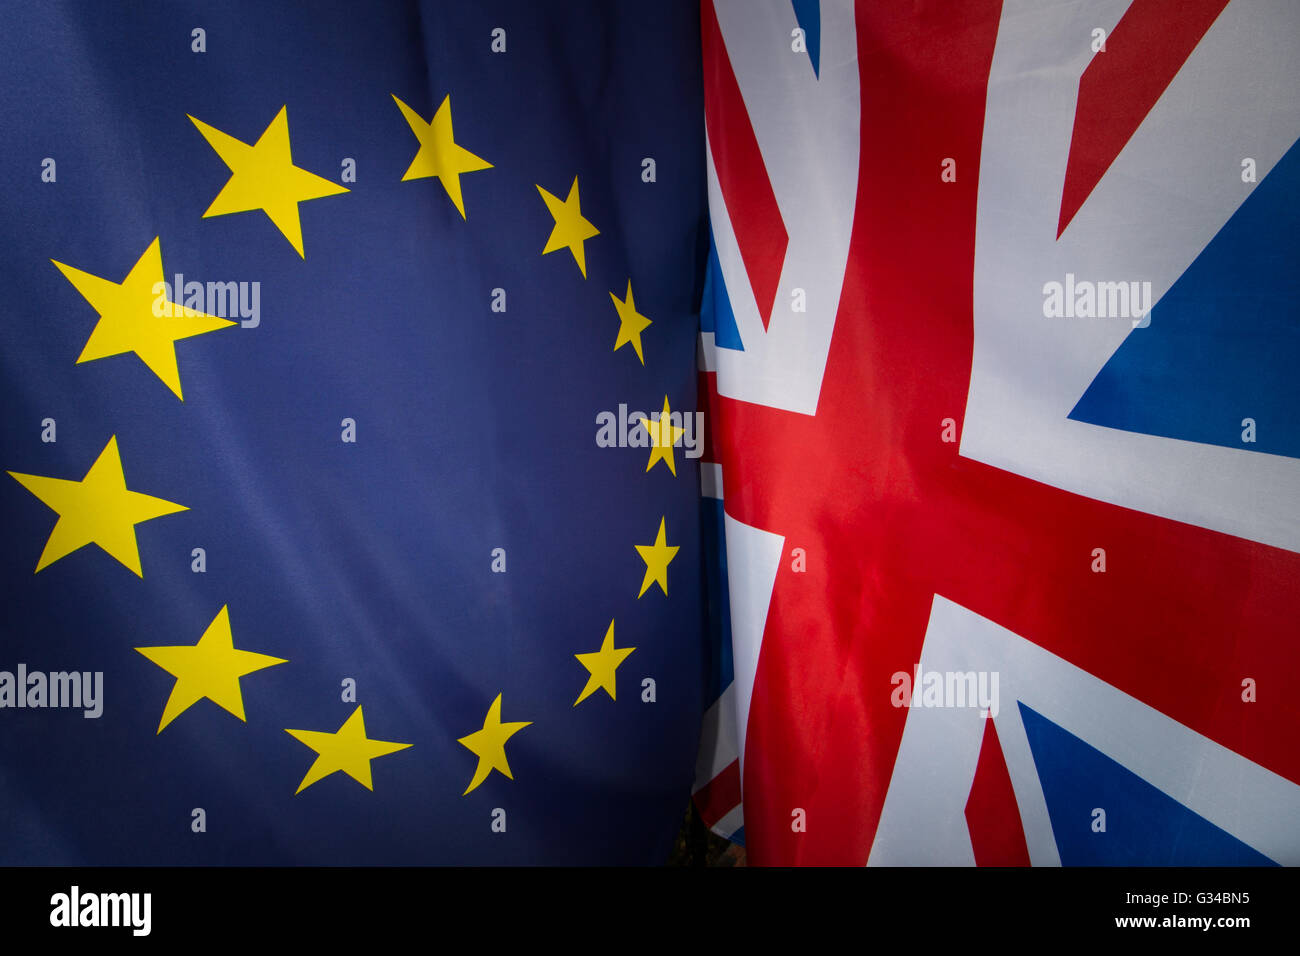 Photo of the European Flag next to the Union Jack at right angles to each other. - Stock Image